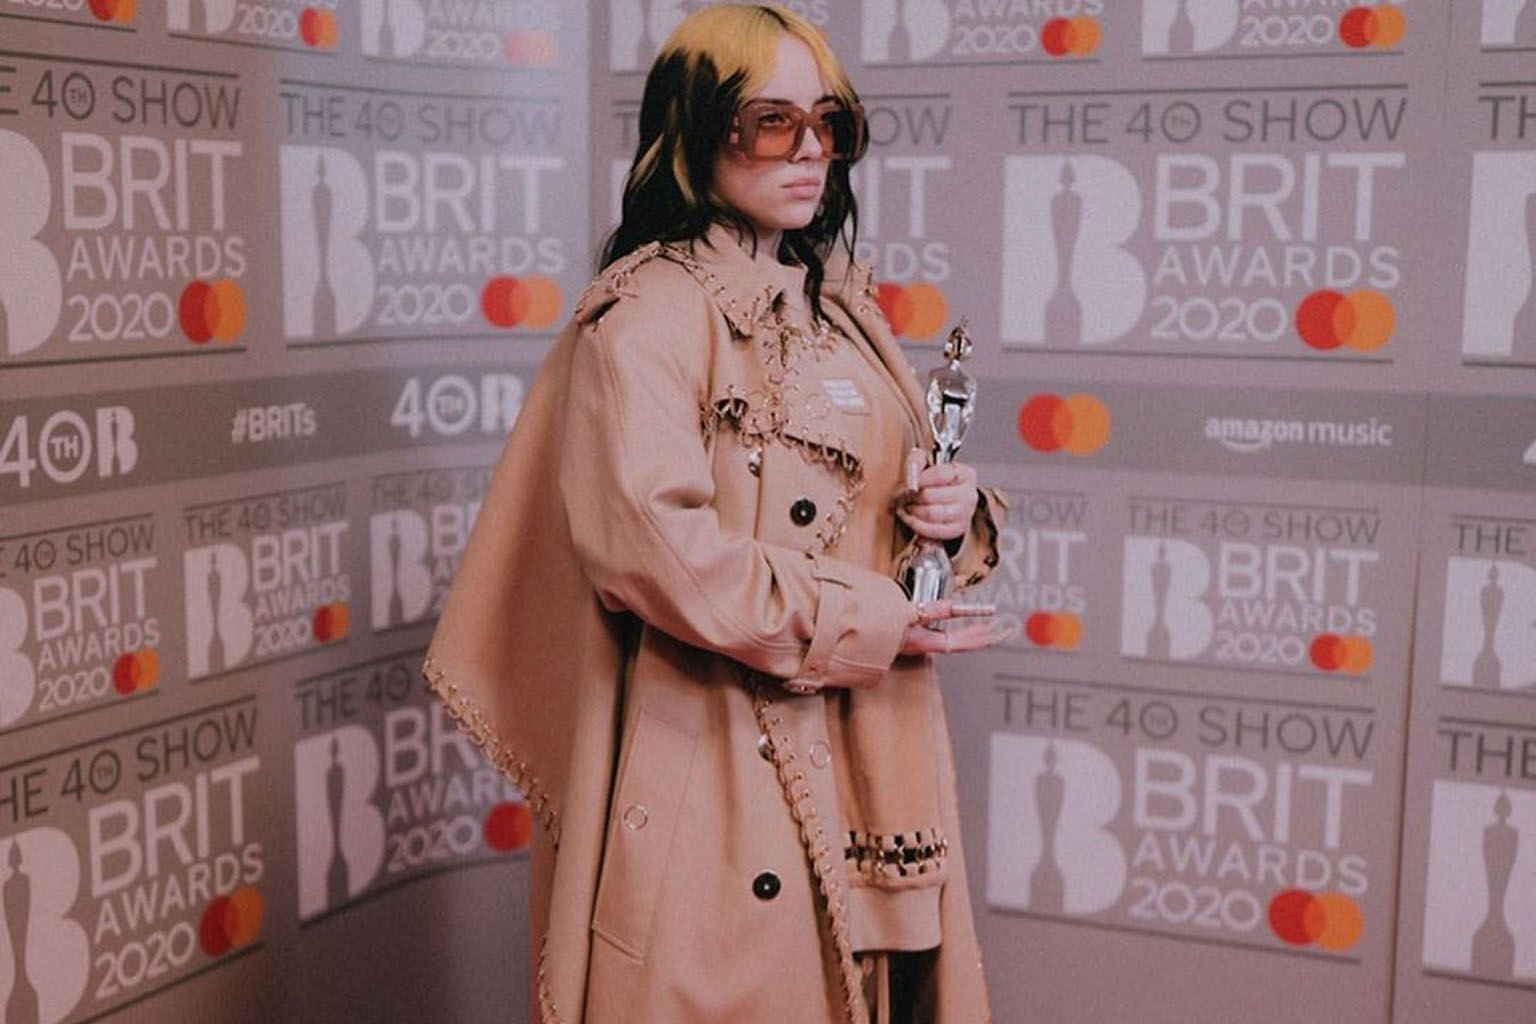 American singer Billie Eilish (above) has received praise and criticism for her fashion choices.